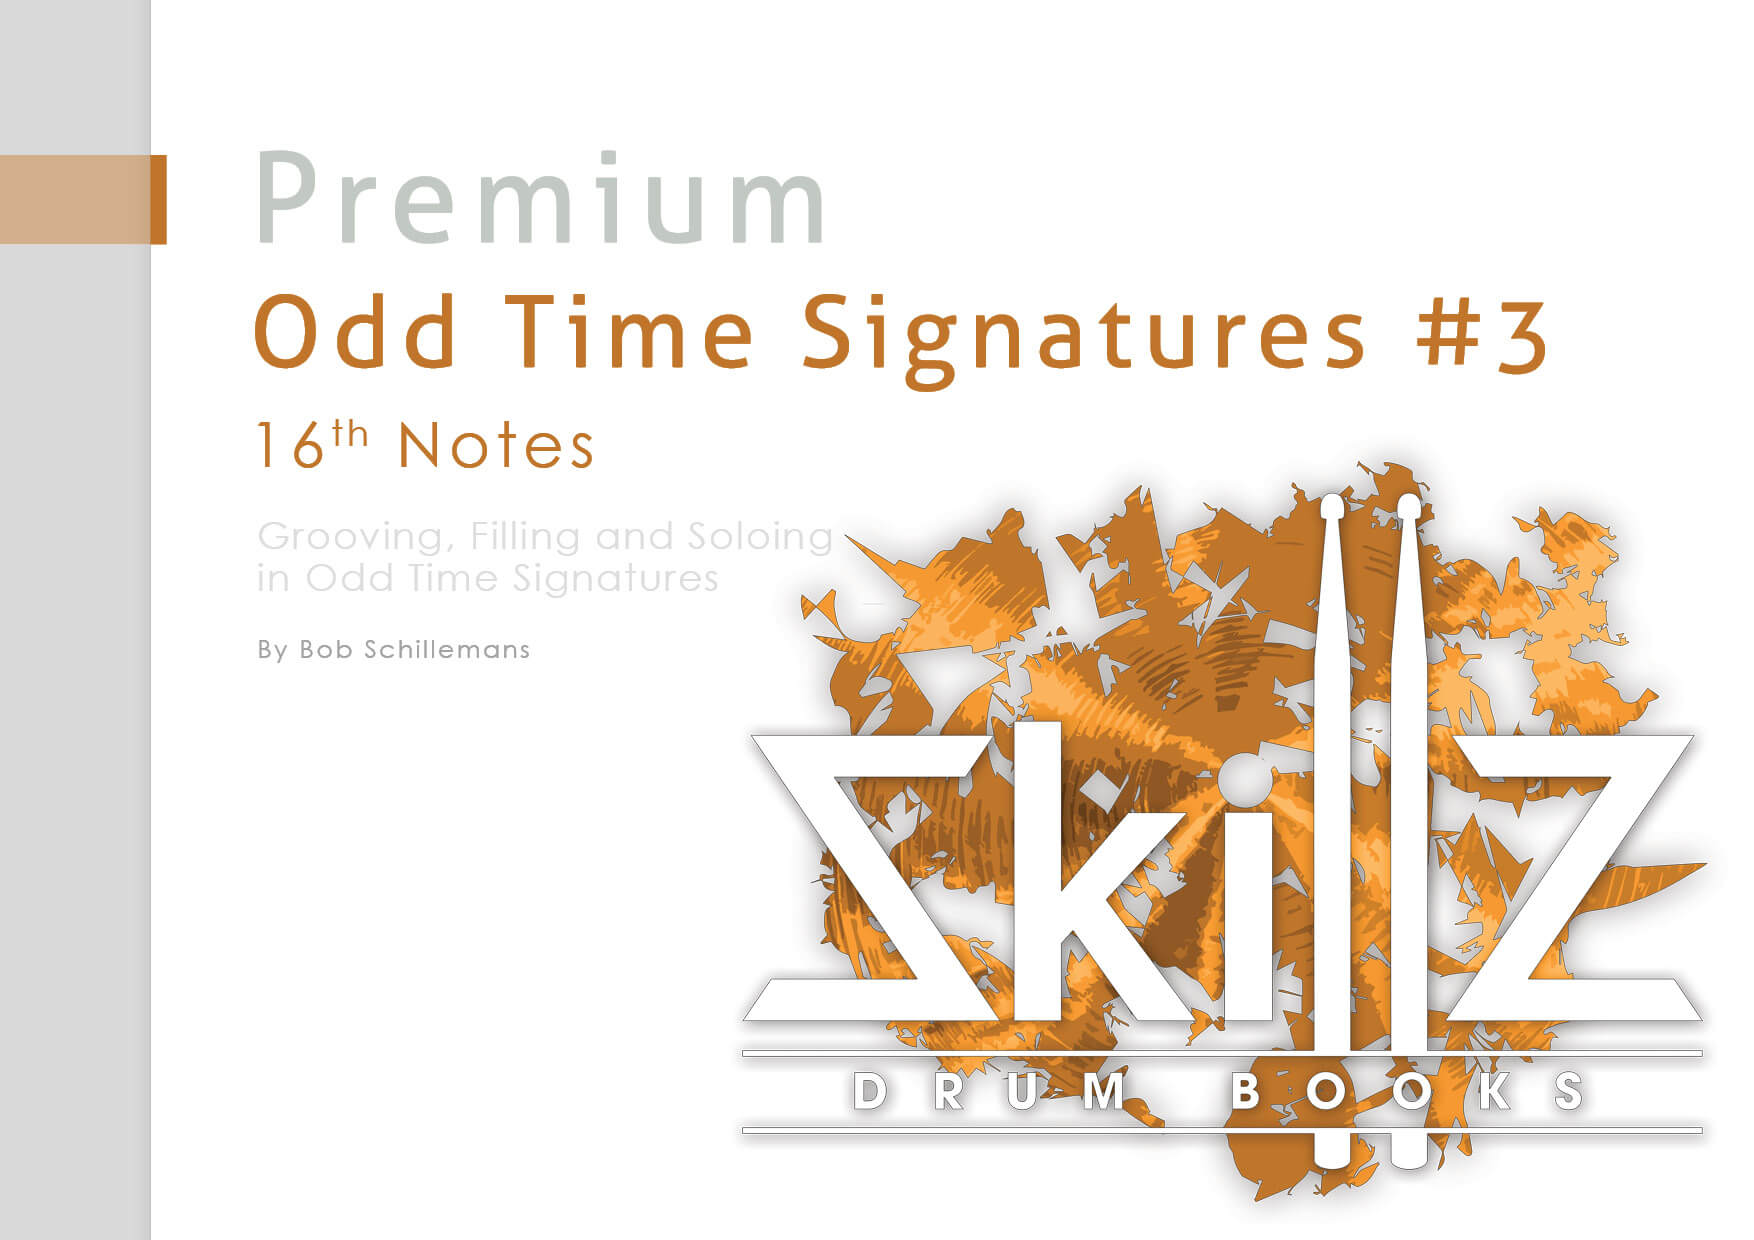 Image of Cover of Premium Course Odd Time Signatures Part #3 16th Notes by Skillz Drum Lessons